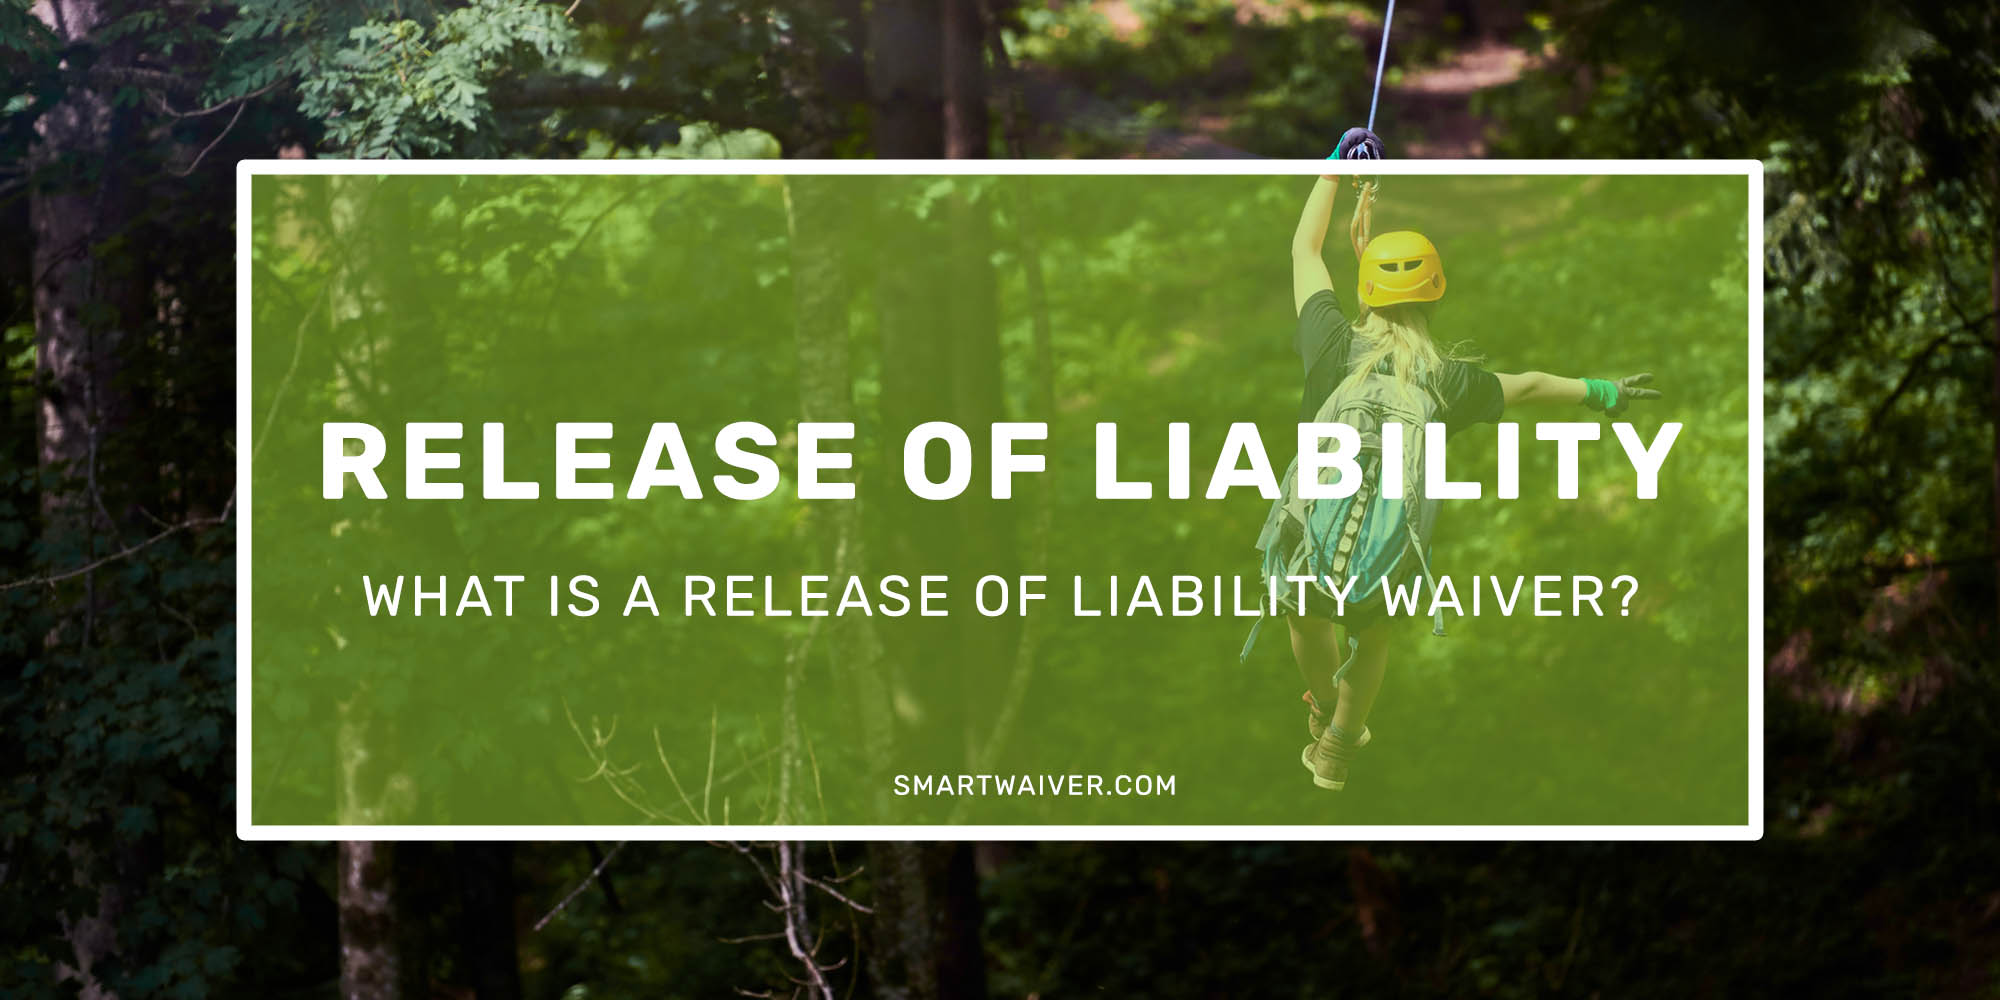 What is a Release of Liability Waiver?